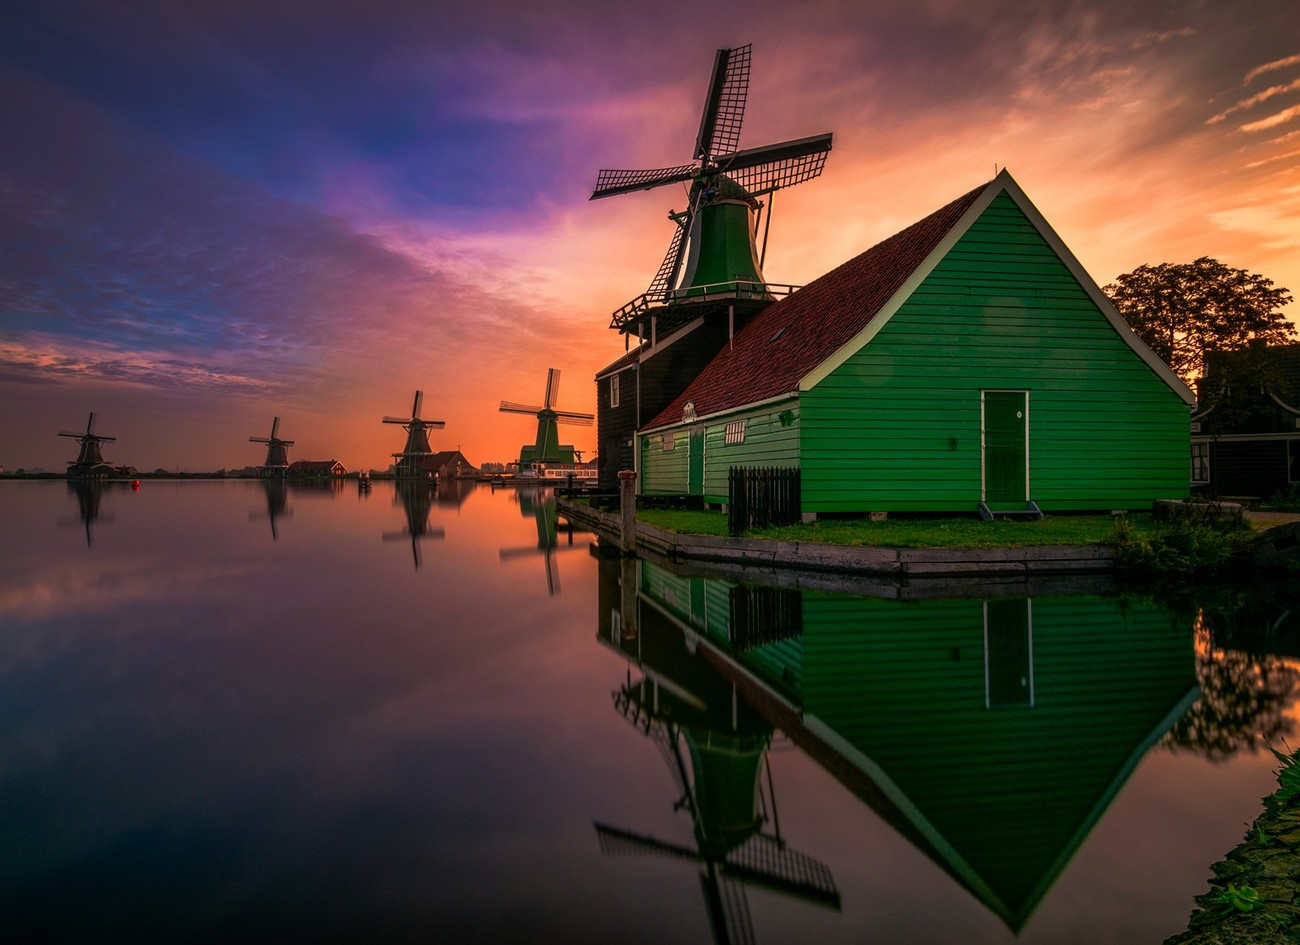 16+ Things Photographers Look At When Shooting Windmills